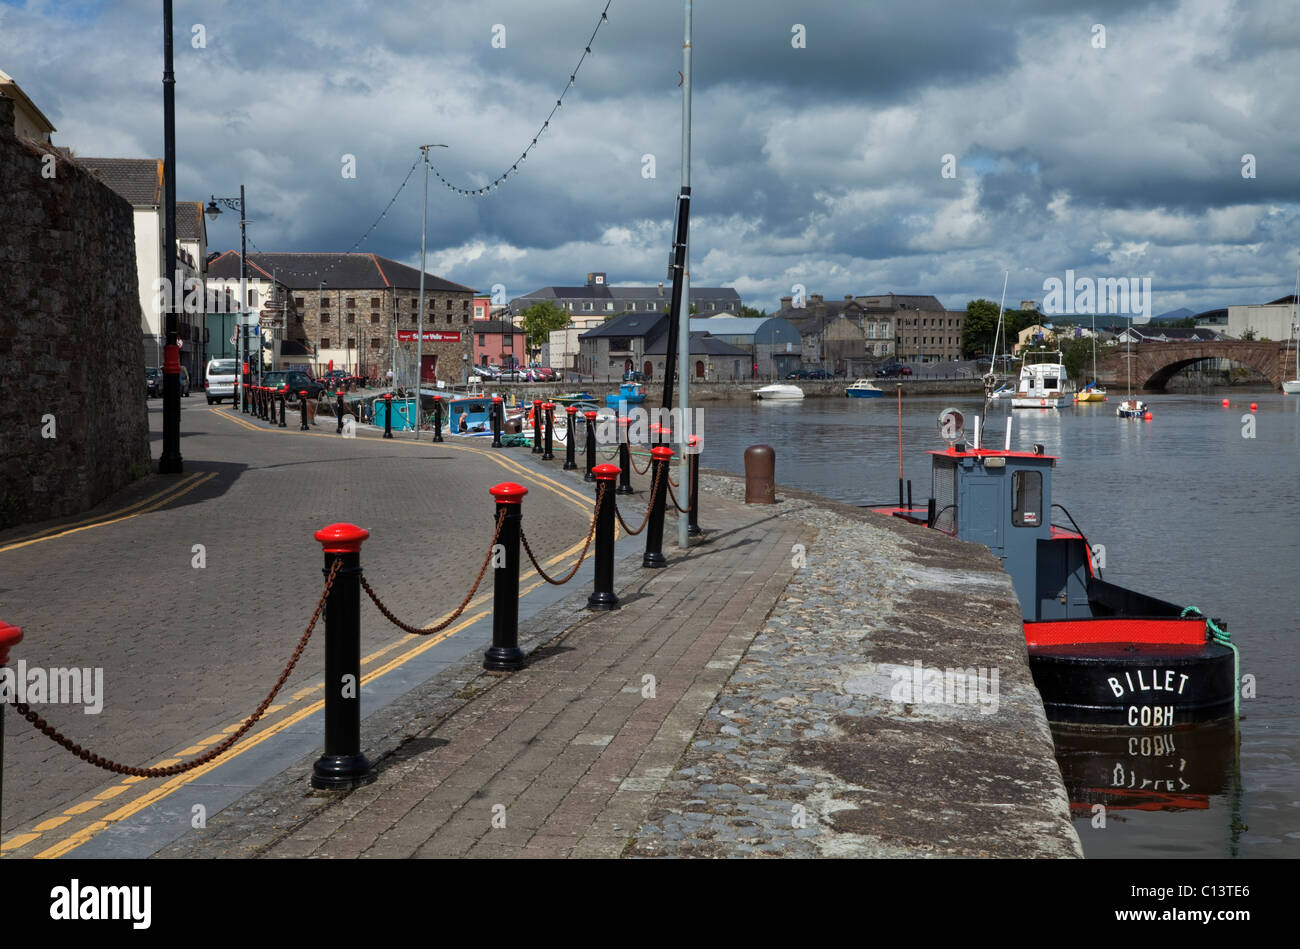 Dungarvan Harbour and Quays, Co Waterford, Ireland - Stock Image